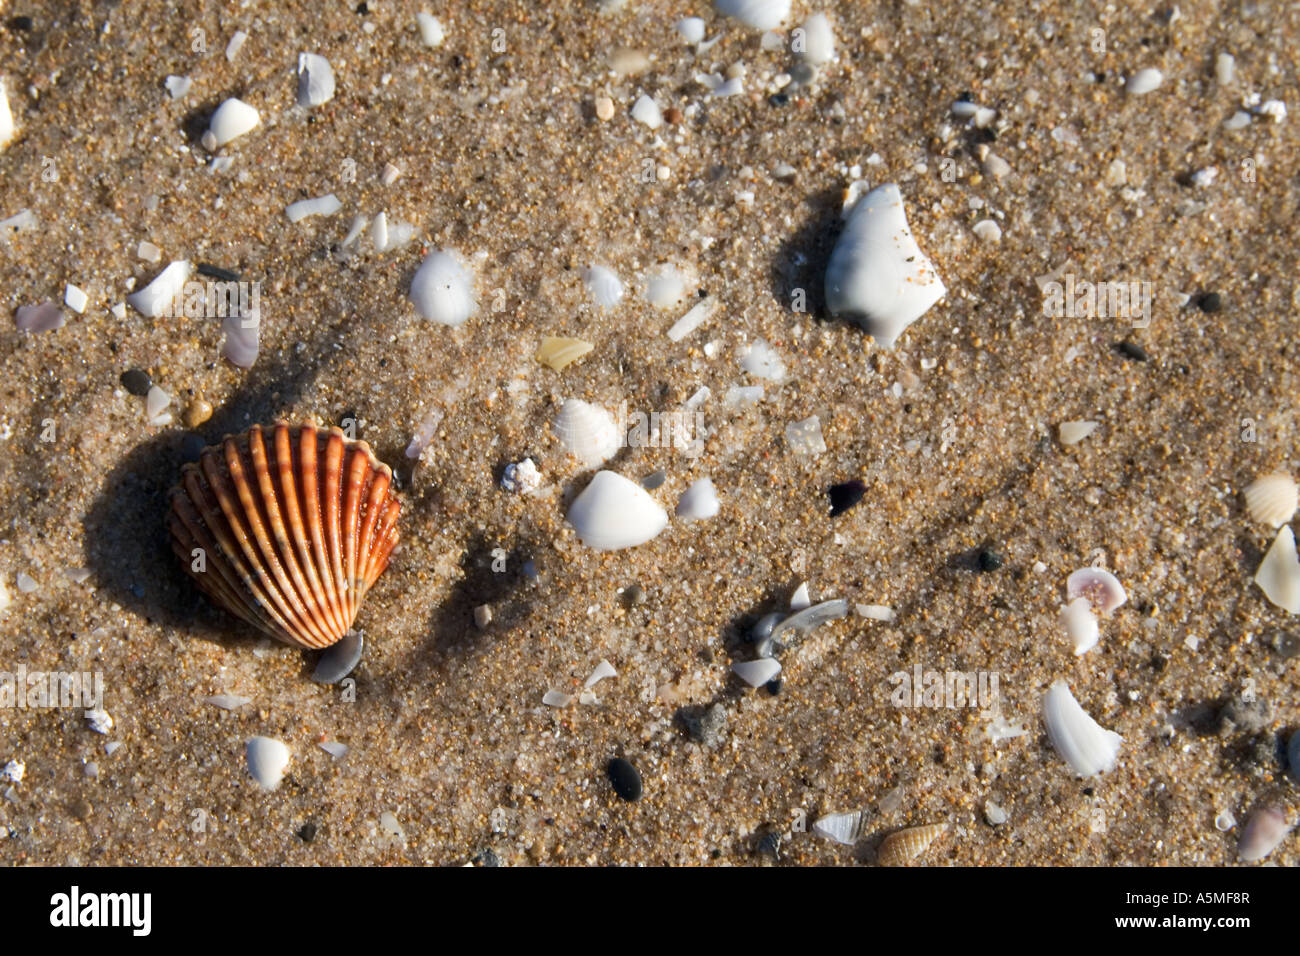 Shell rojo solitario en una playa infestada de shell. Foto de stock